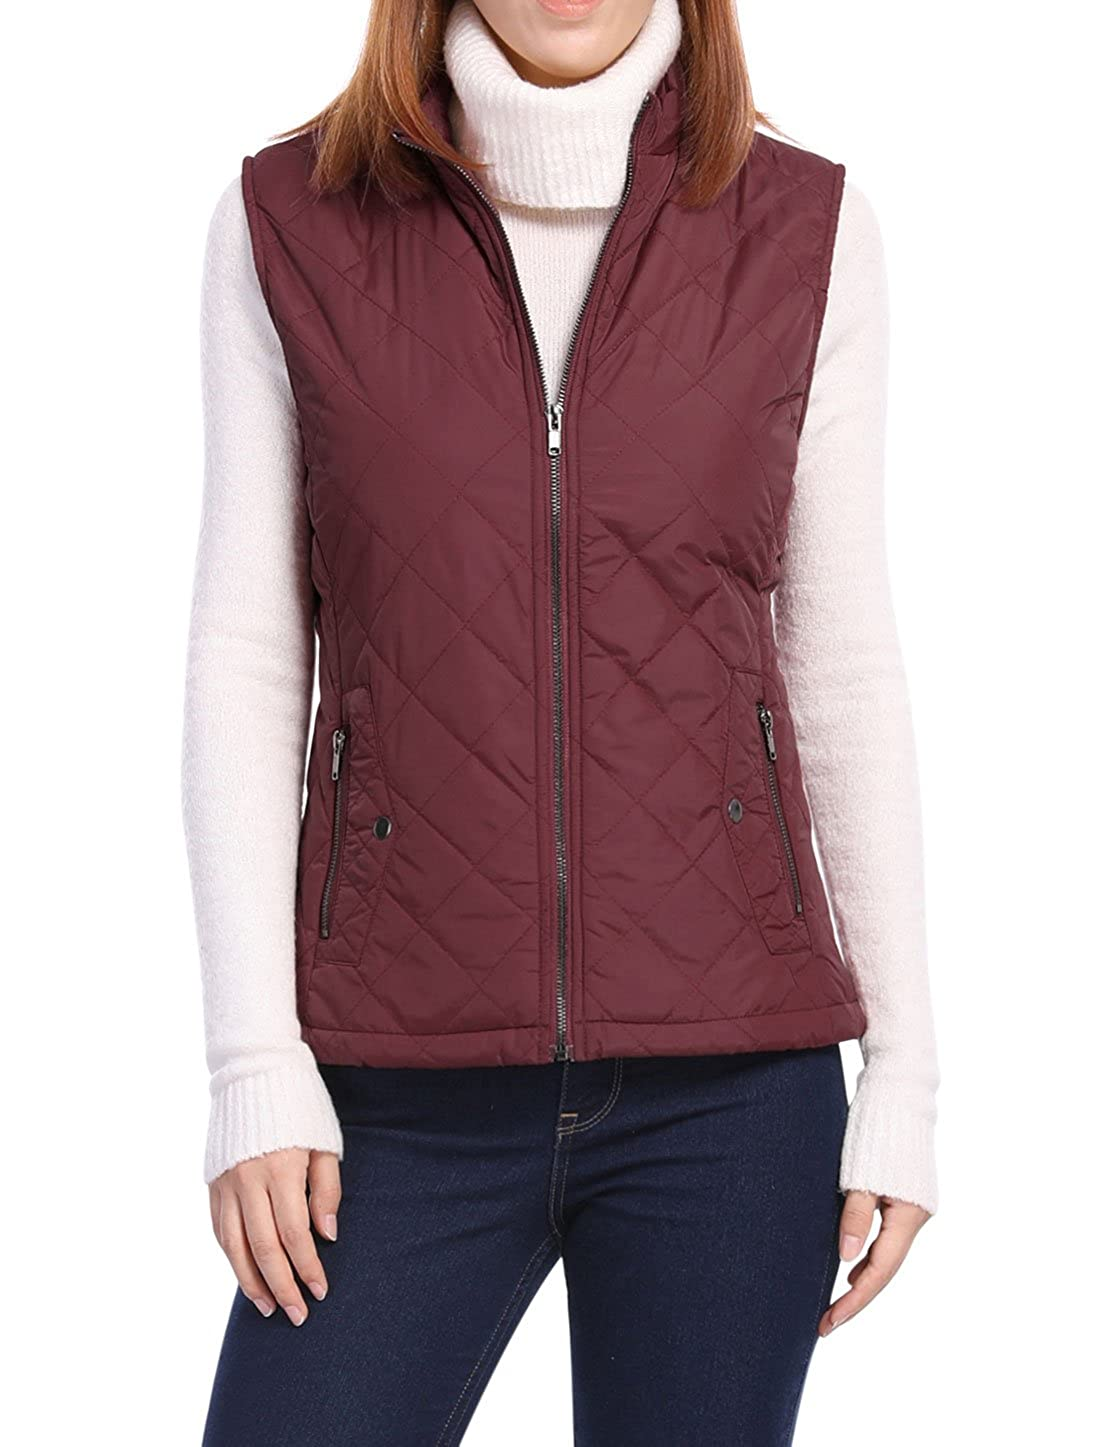 Allegra K Women's Front Zip Up Stand Collar Mock Pockets Quilted Padded Vest g18082900ux0053